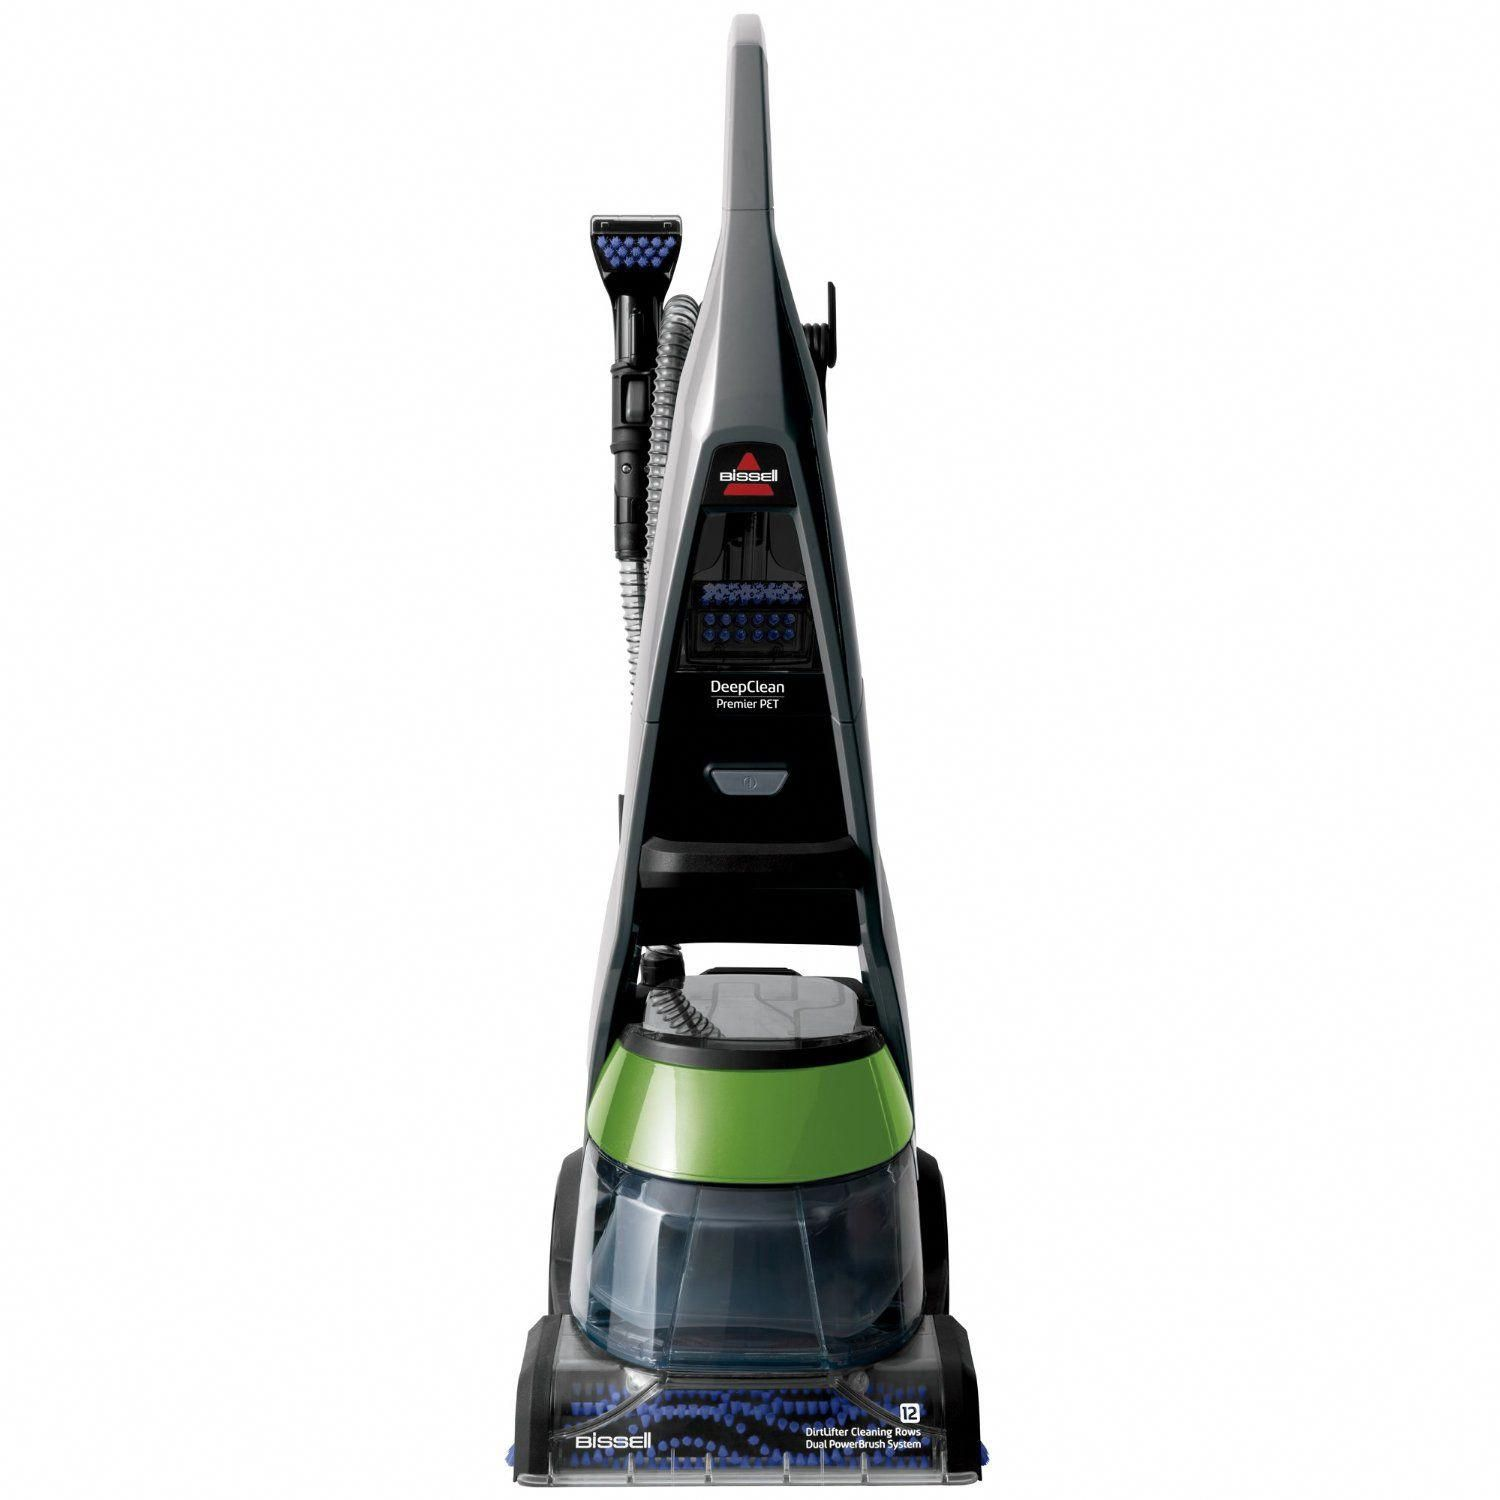 For This You Will Need The Best Carpet Steam Cleaner For Cleaning The Carpets Here Is The List Pet Carpet Cleaners Carpet Cleaning Hacks How To Clean Carpet